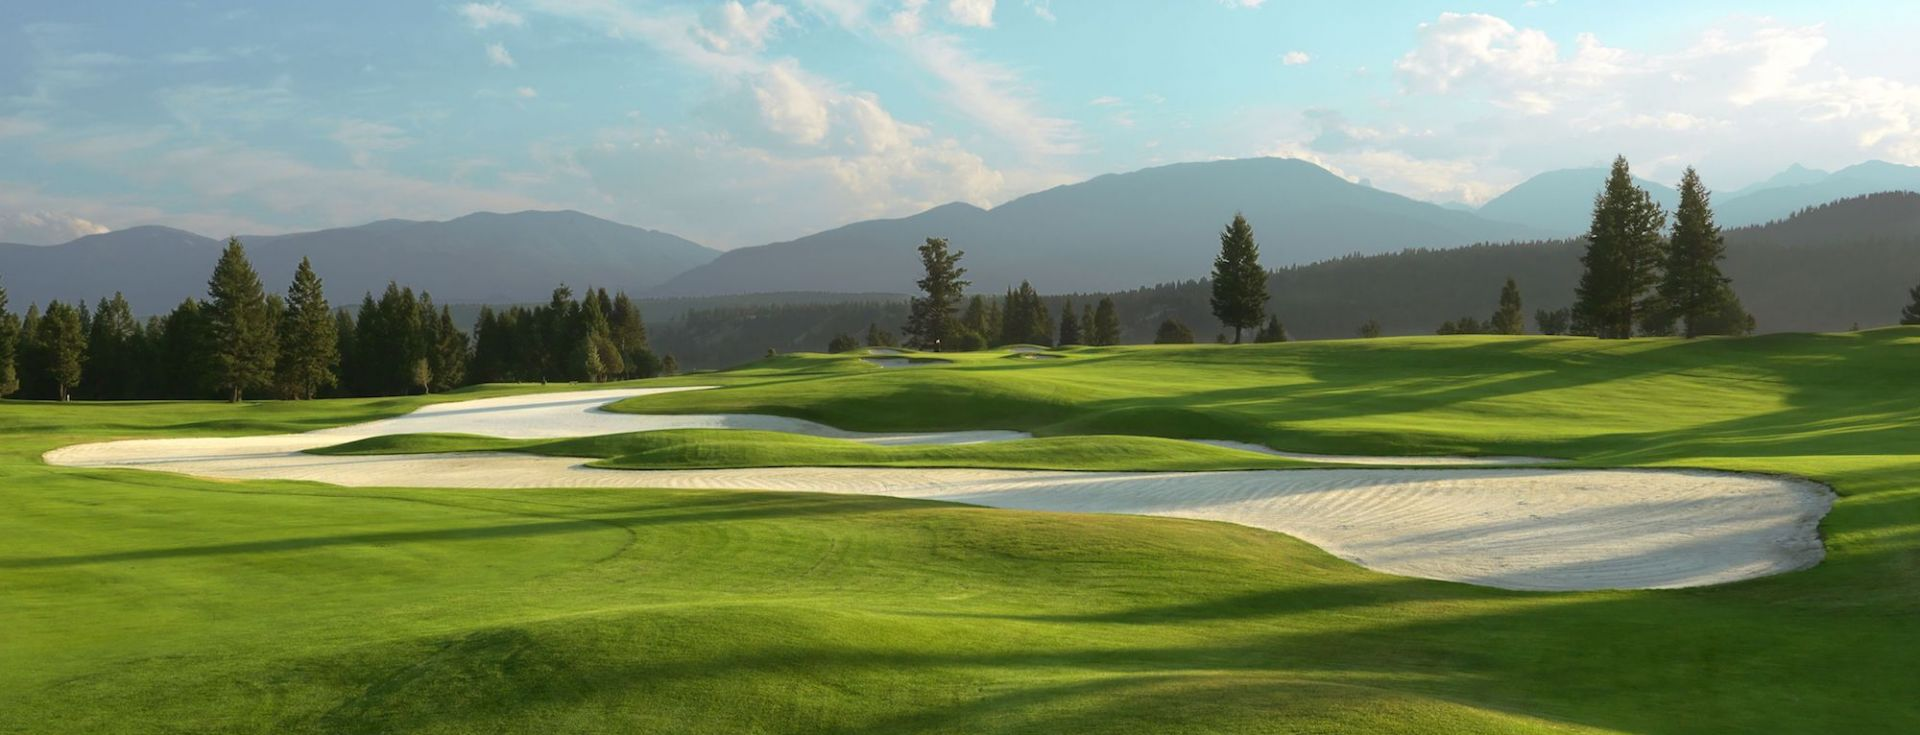 mesa golf courses map with Columbia Valley Golf Packages on Cdp rancho likewise Fairfield Inn And Suites Kelowna Golf Package further Fairmont Banff Springs 3 Night 2 Round Golf Vacation moreover Telluride additionally Search.